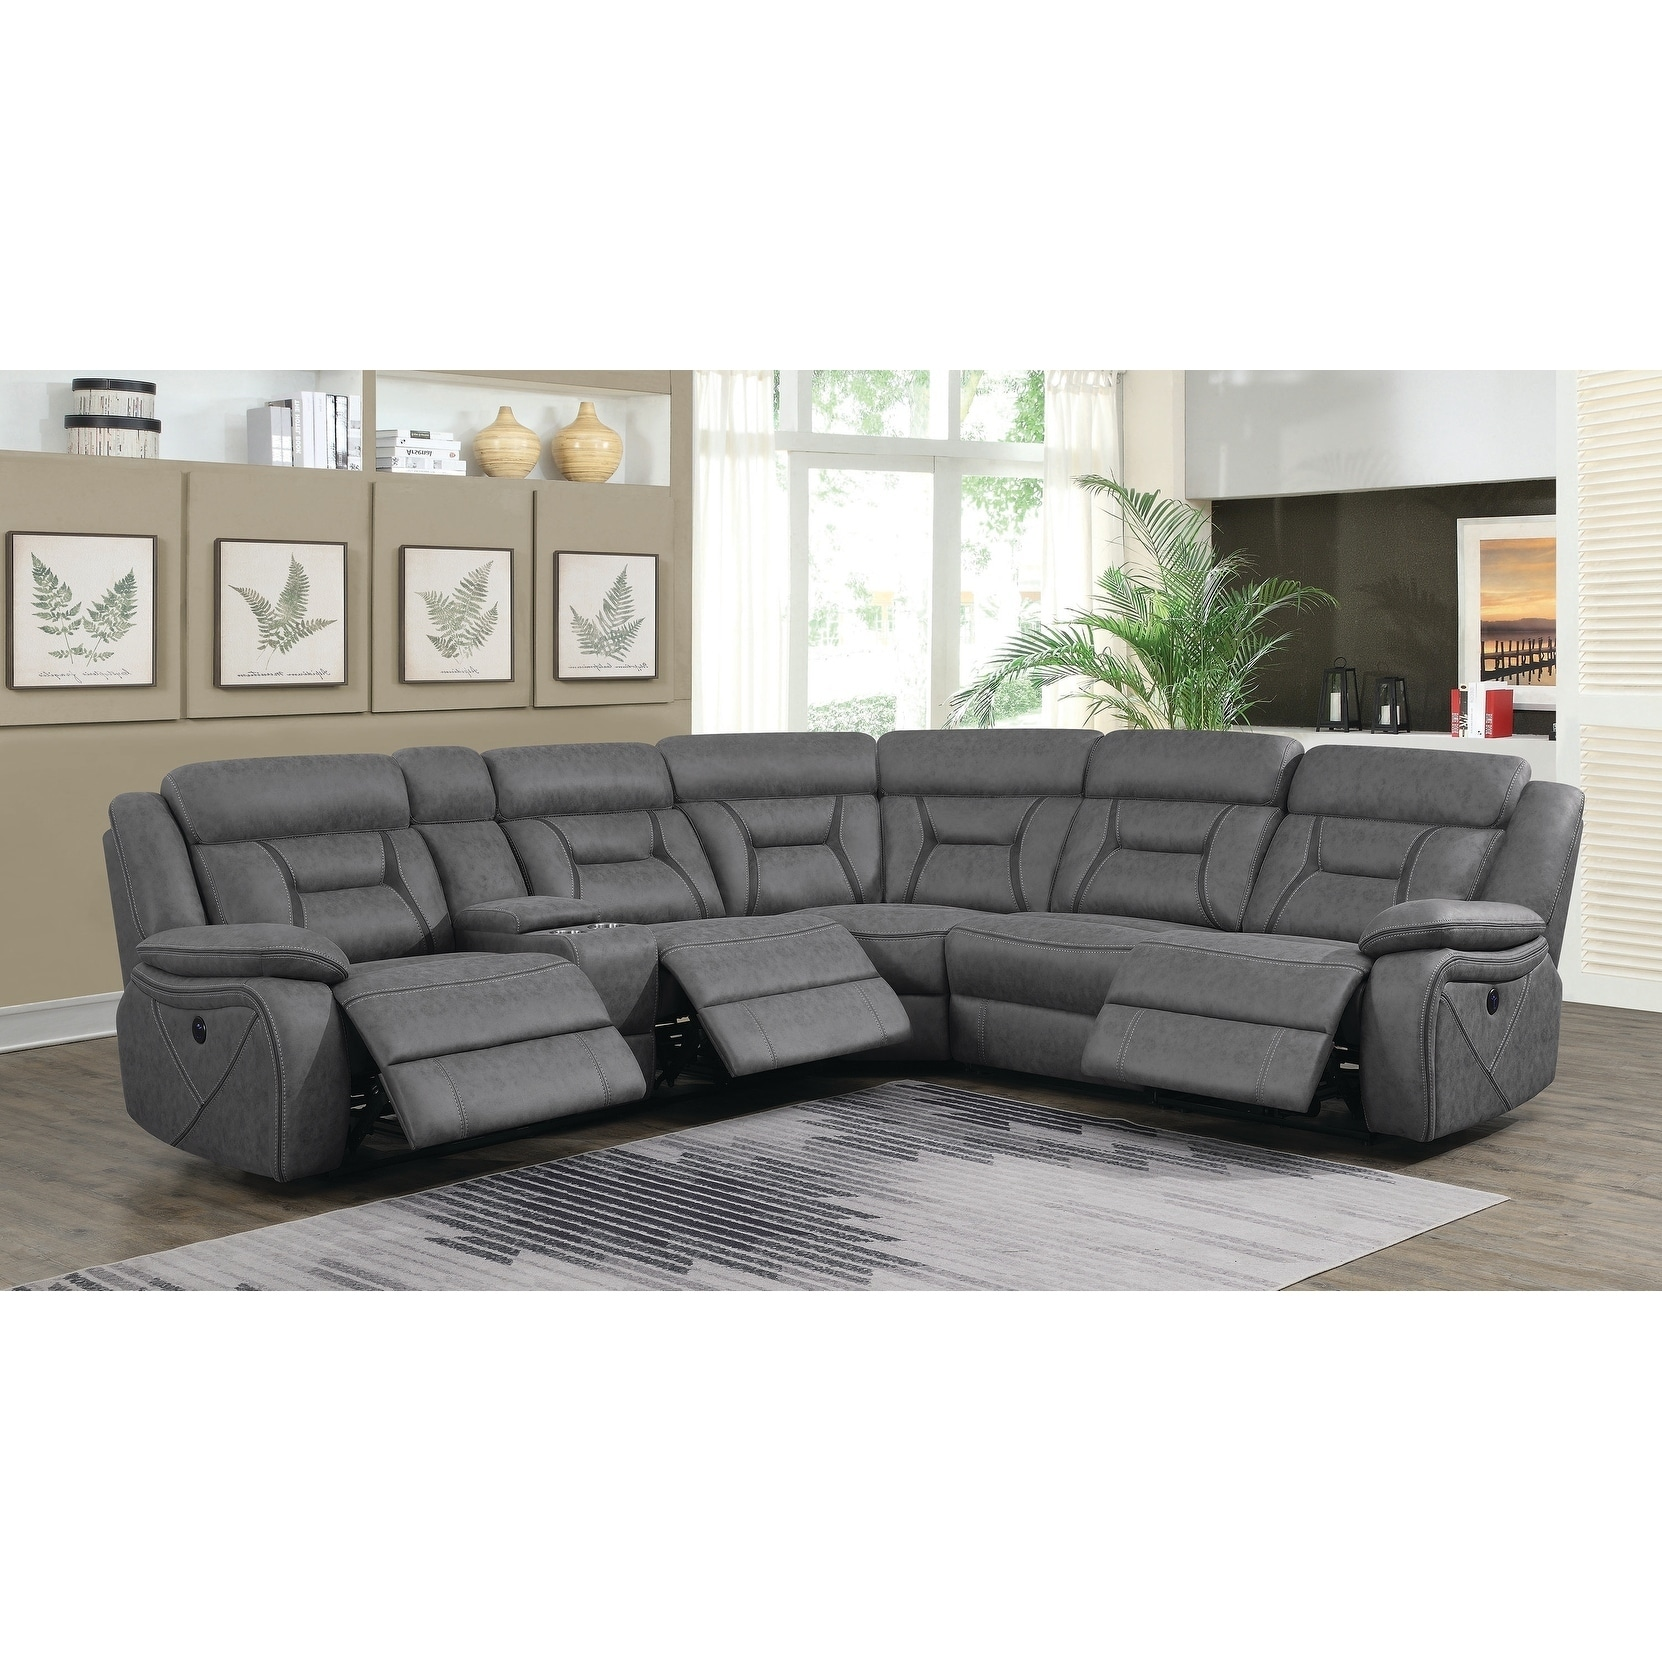 Couch Leder Cappuccino Furniture Coaster Furniture Sale Shop Our Best Home Goods Deals